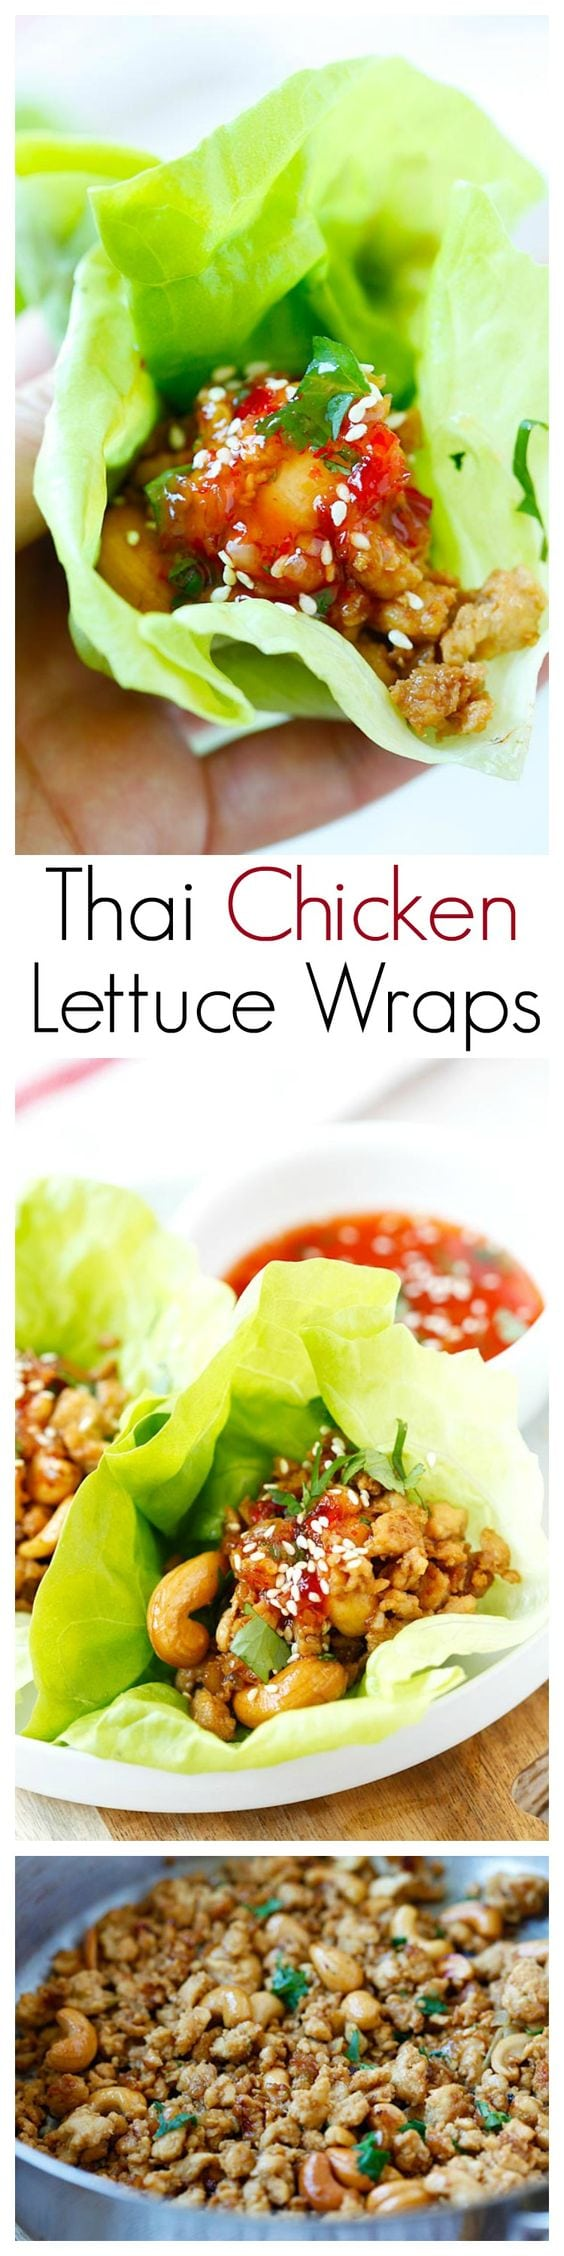 Thai Chicken Lettuce Wraps – easy, healthy and delicious chicken wraps with Thai sweet chili sauce. Takes 20 mins to make!   rasamalaysia.com